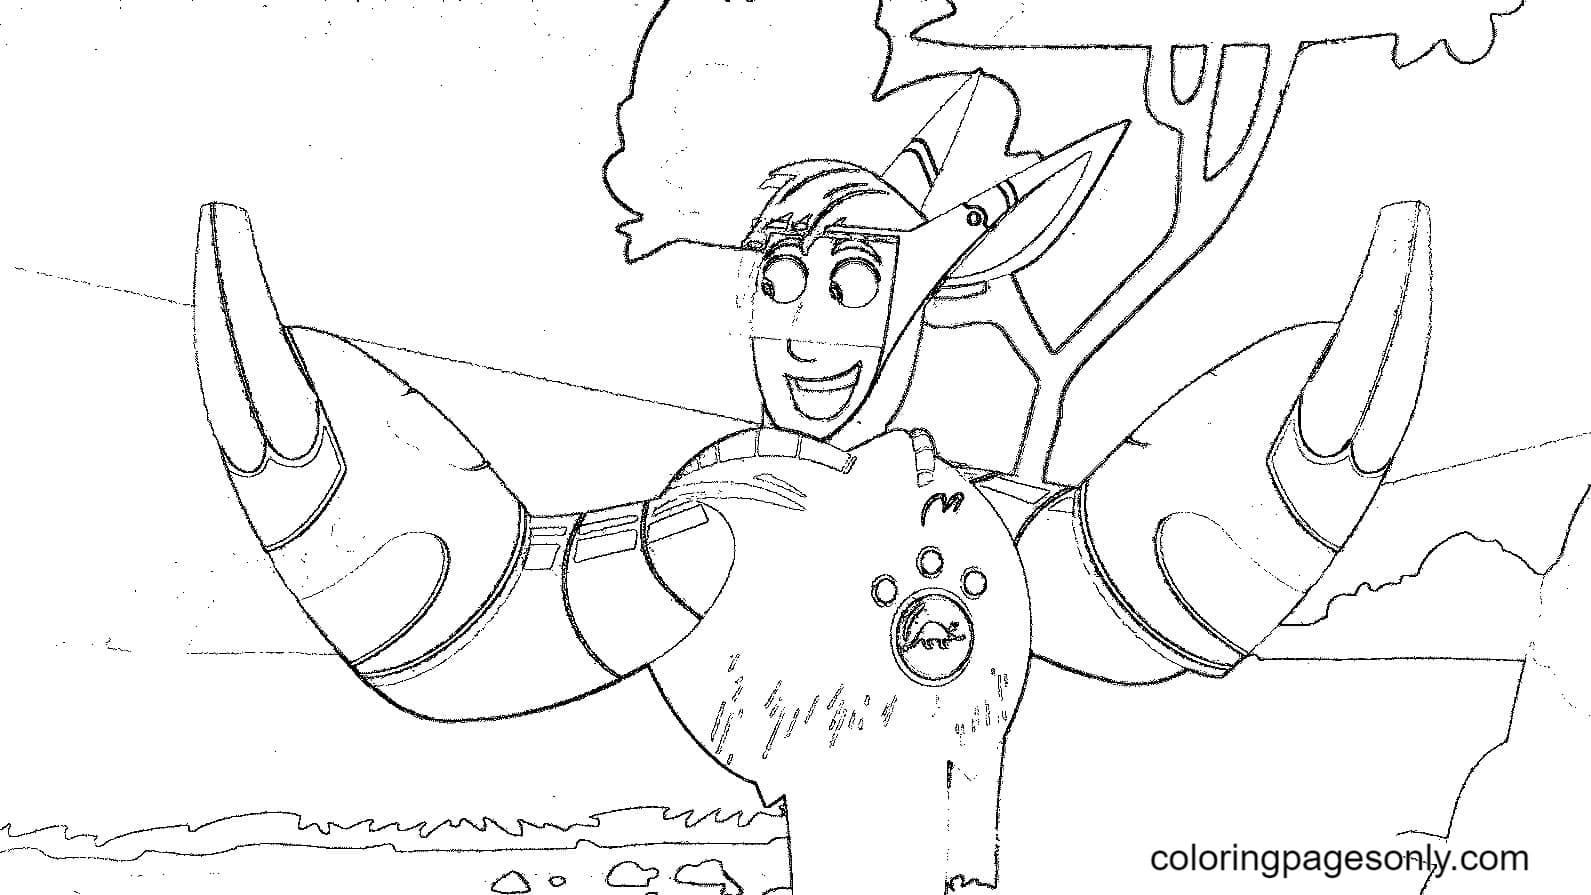 Martin Kratt From Wild Kratts Coloring Page